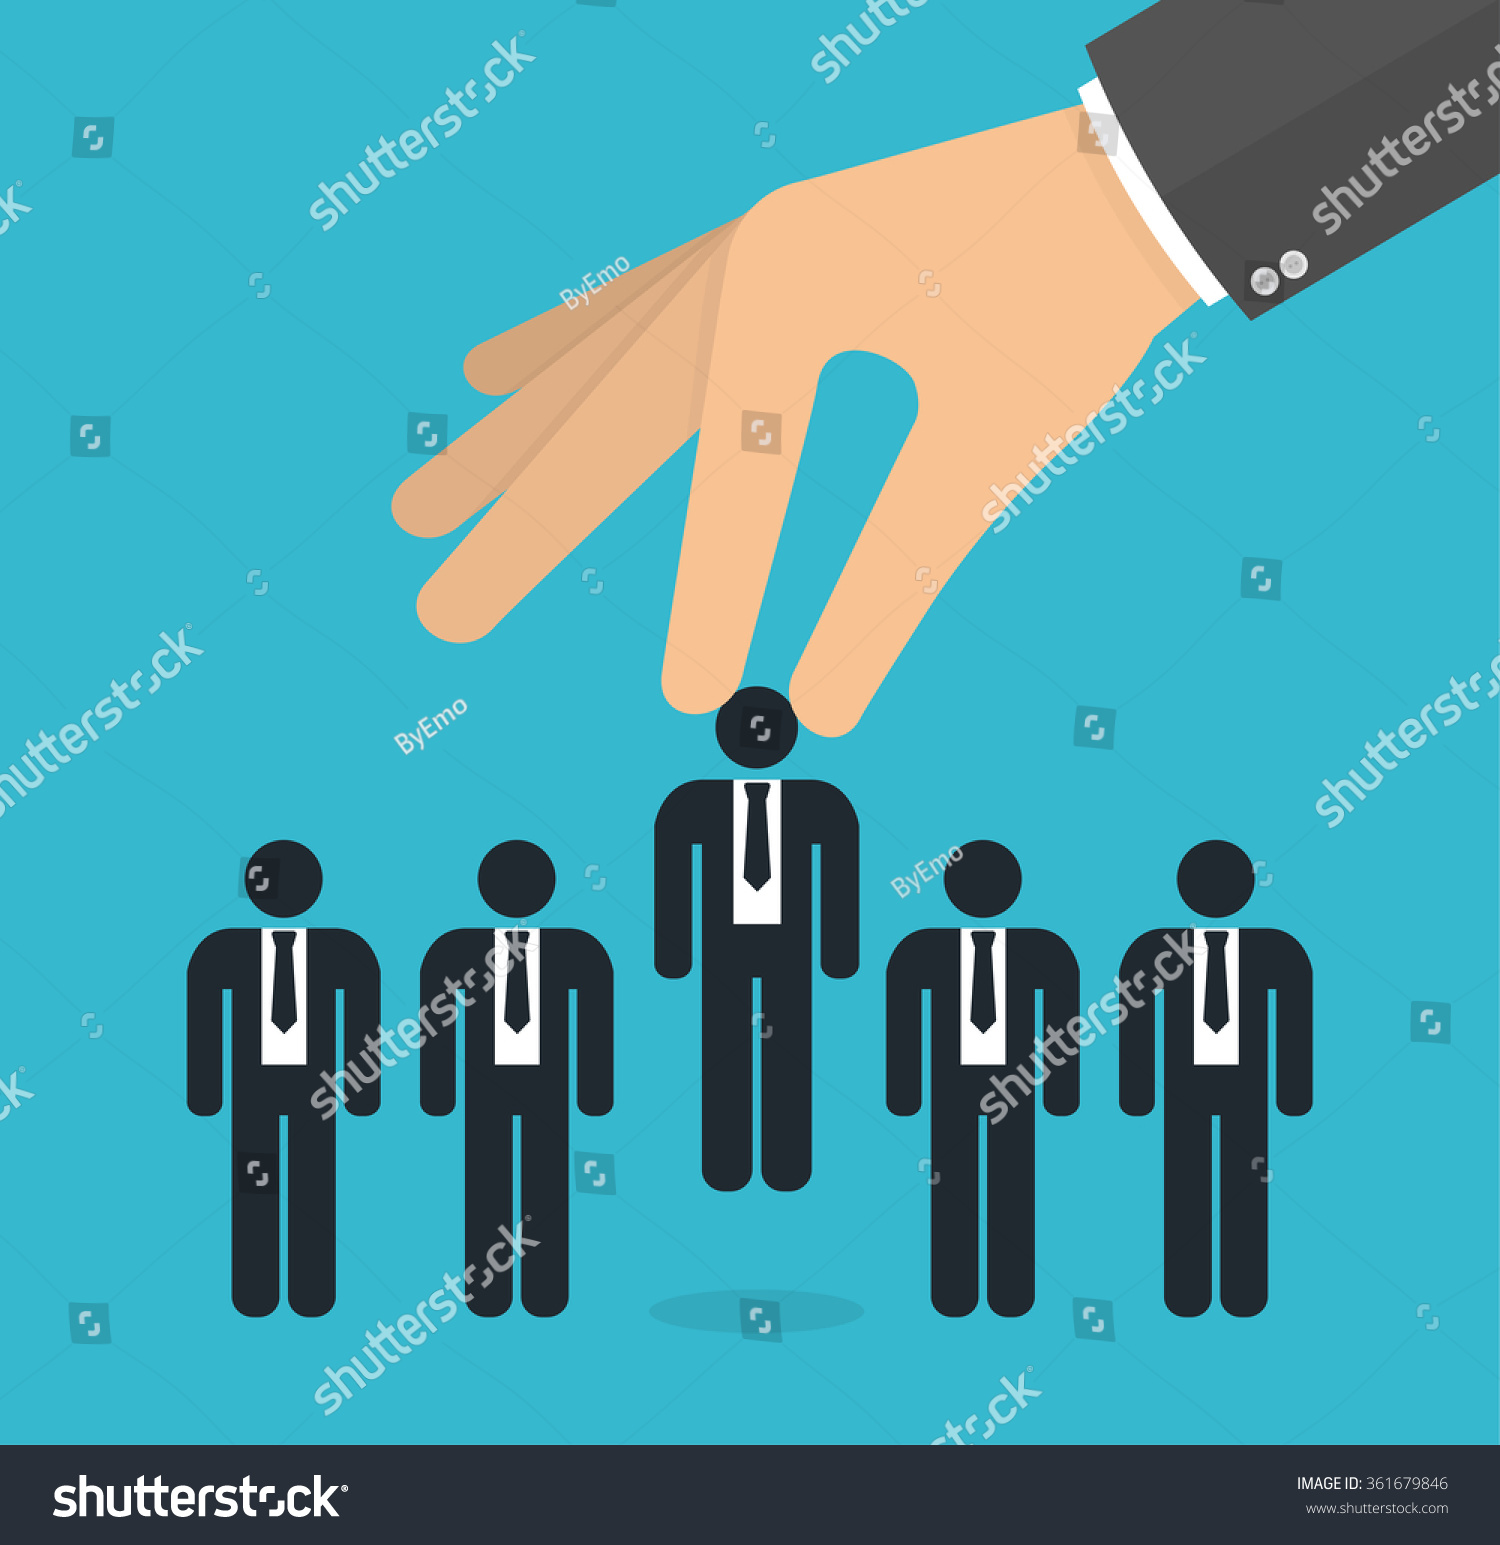 choosing best candidate concept job concept stock vector 361679846 choosing the best candidate concept for the job concept hand picking up a businessman stick